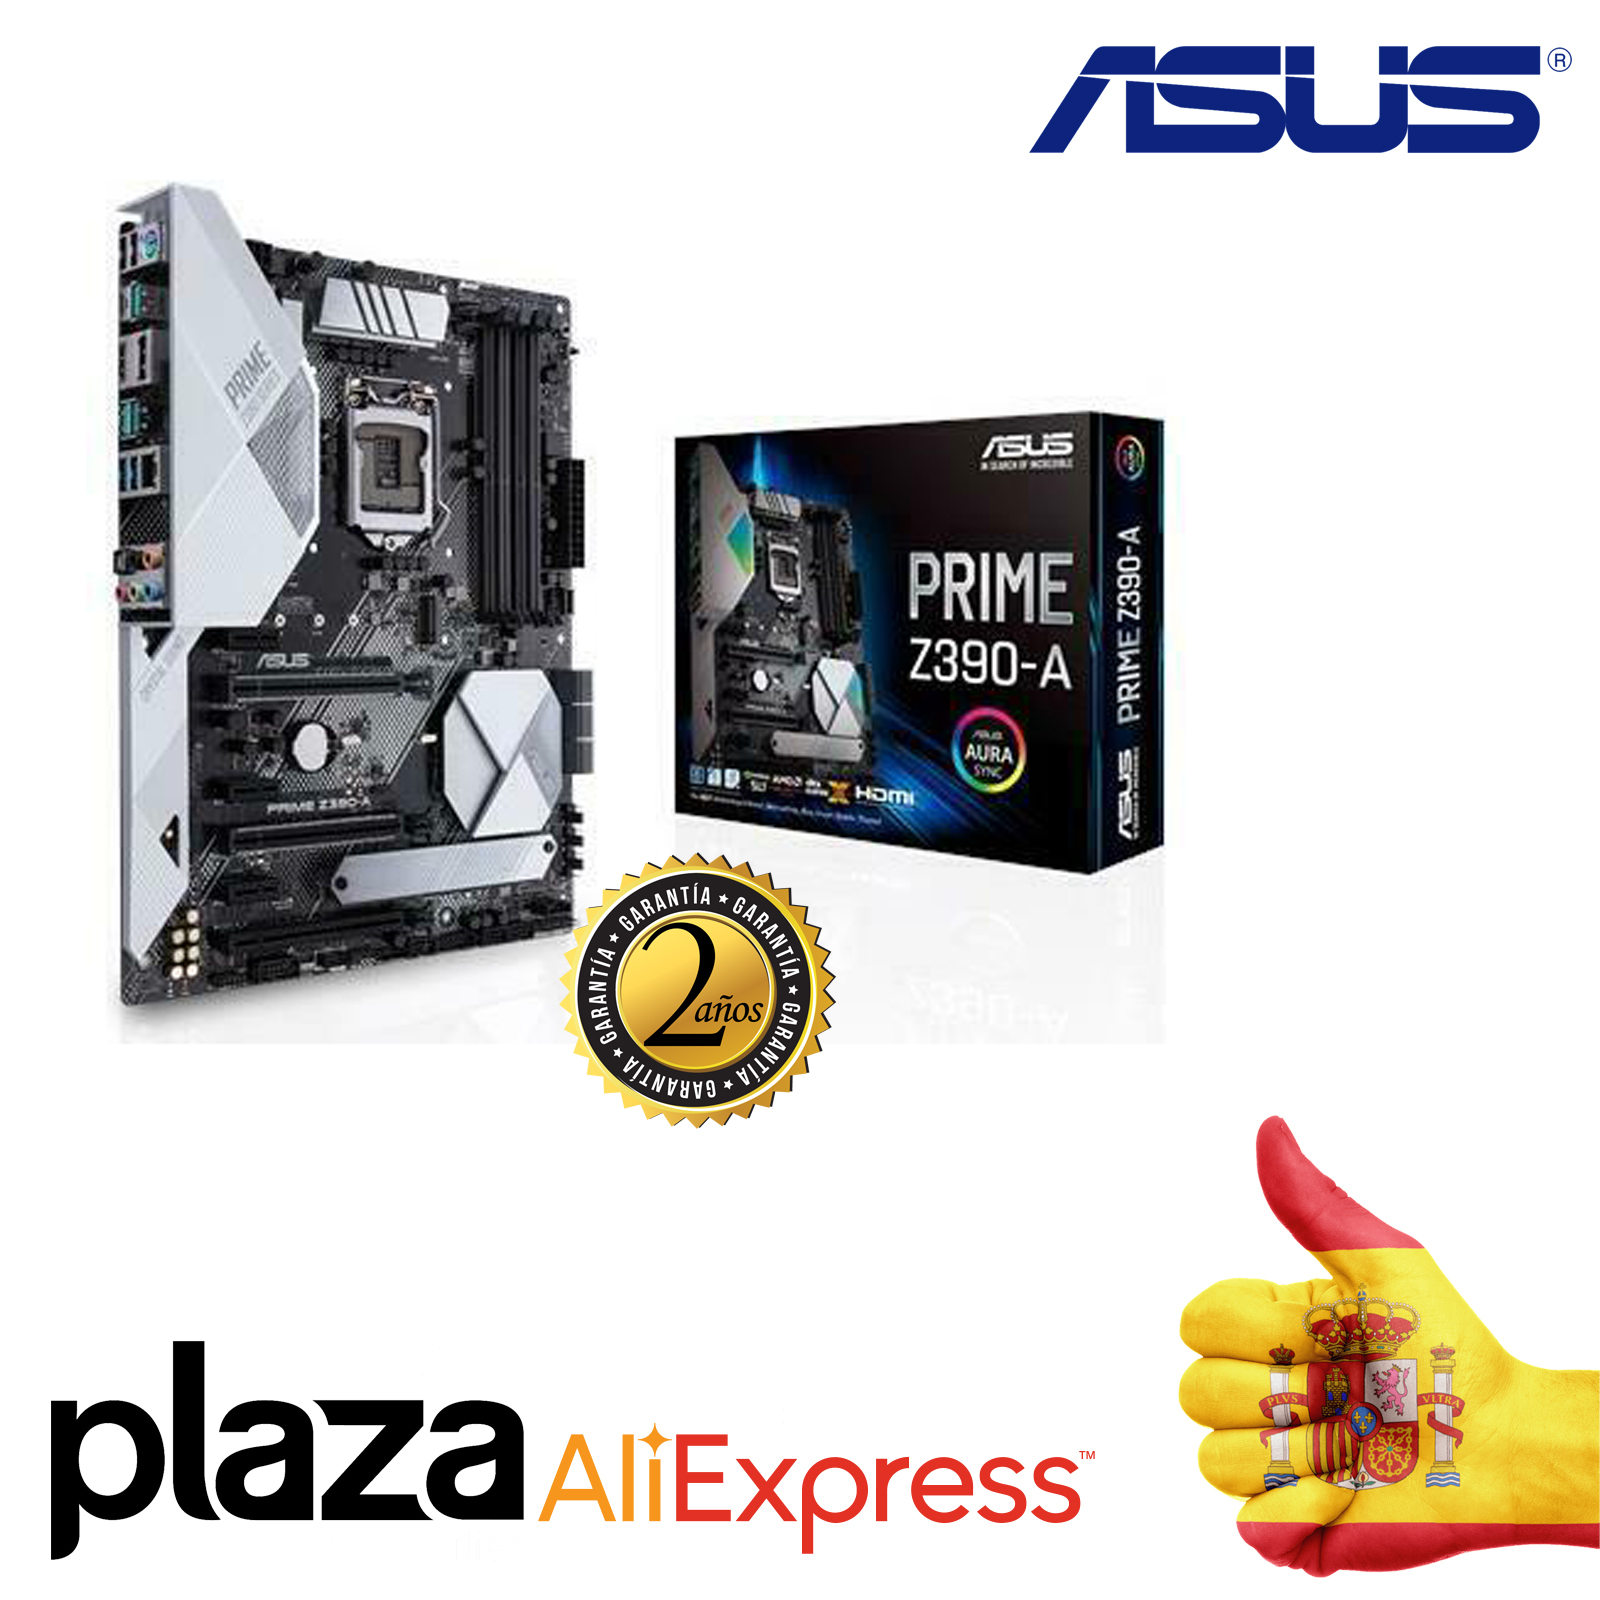 Motherboard Asus Intel Prime Z390-a Socket 1151 Ddr4x4 Max 64 GB 4266 MHz Display